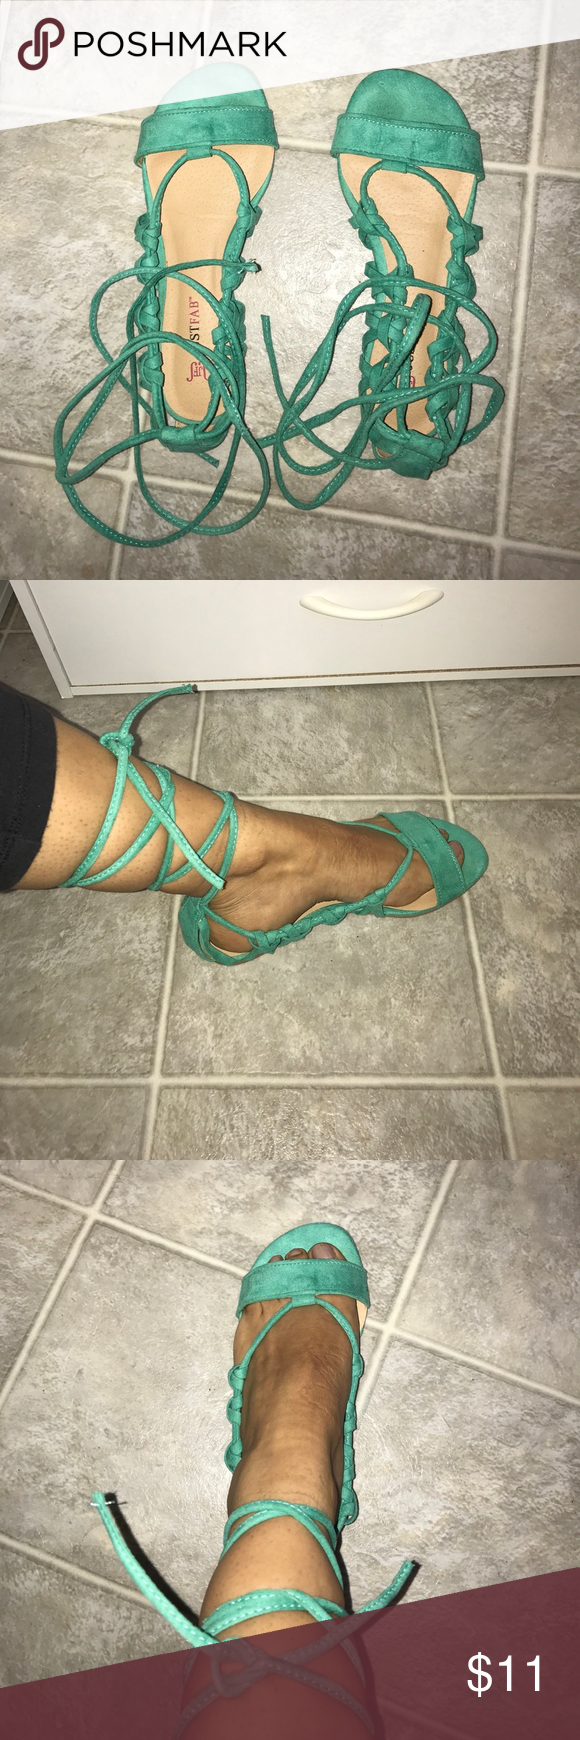 Lace up flat sandals Green flat sandals with laces. Worn a couple of times. JustFab Shoes Sandals